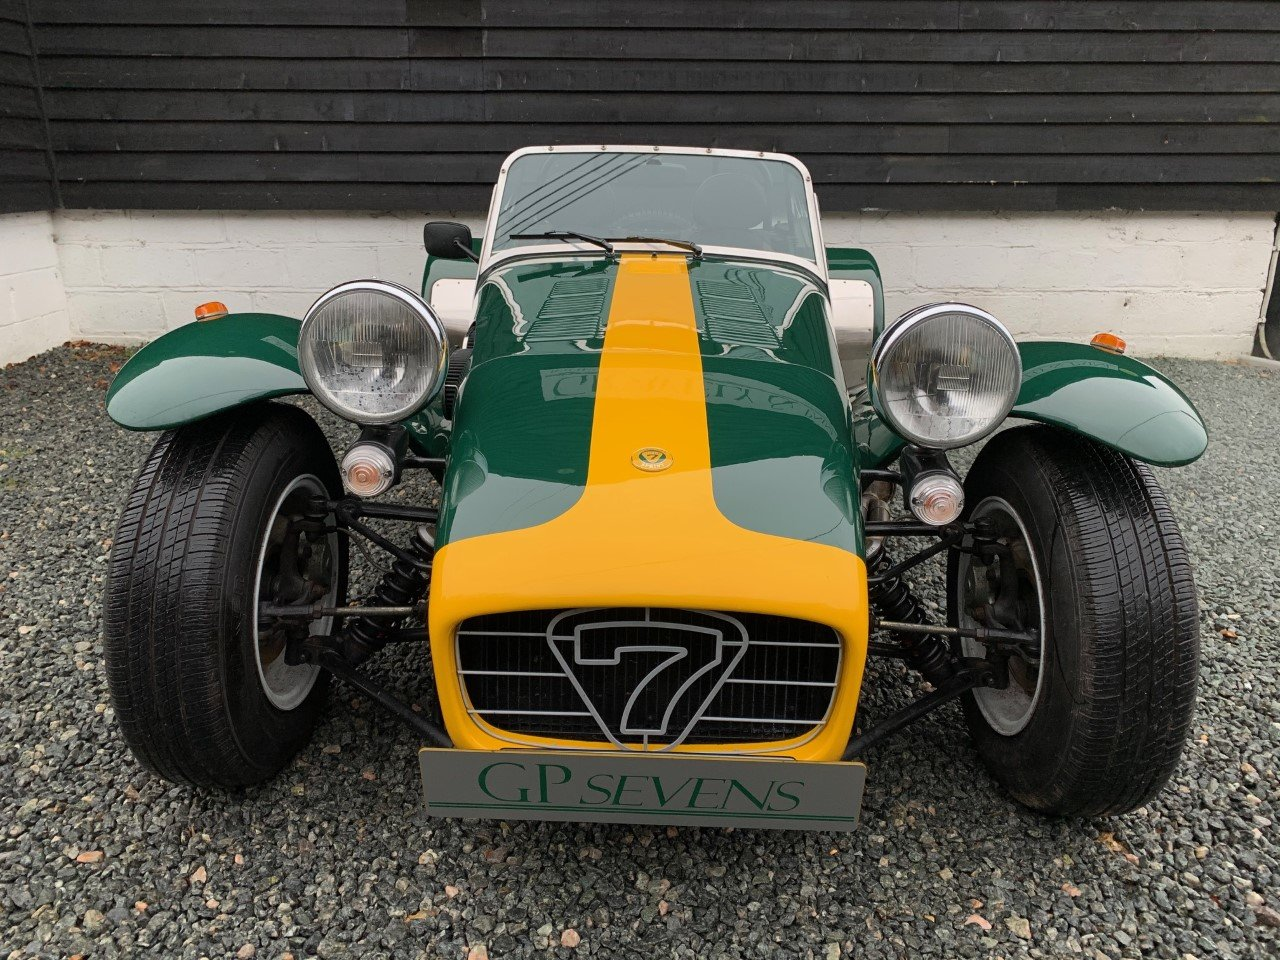 1998 Caterham Classic 1.6 VX Vauxhall 100bhp 5 speed For Sale (picture 3 of 6)